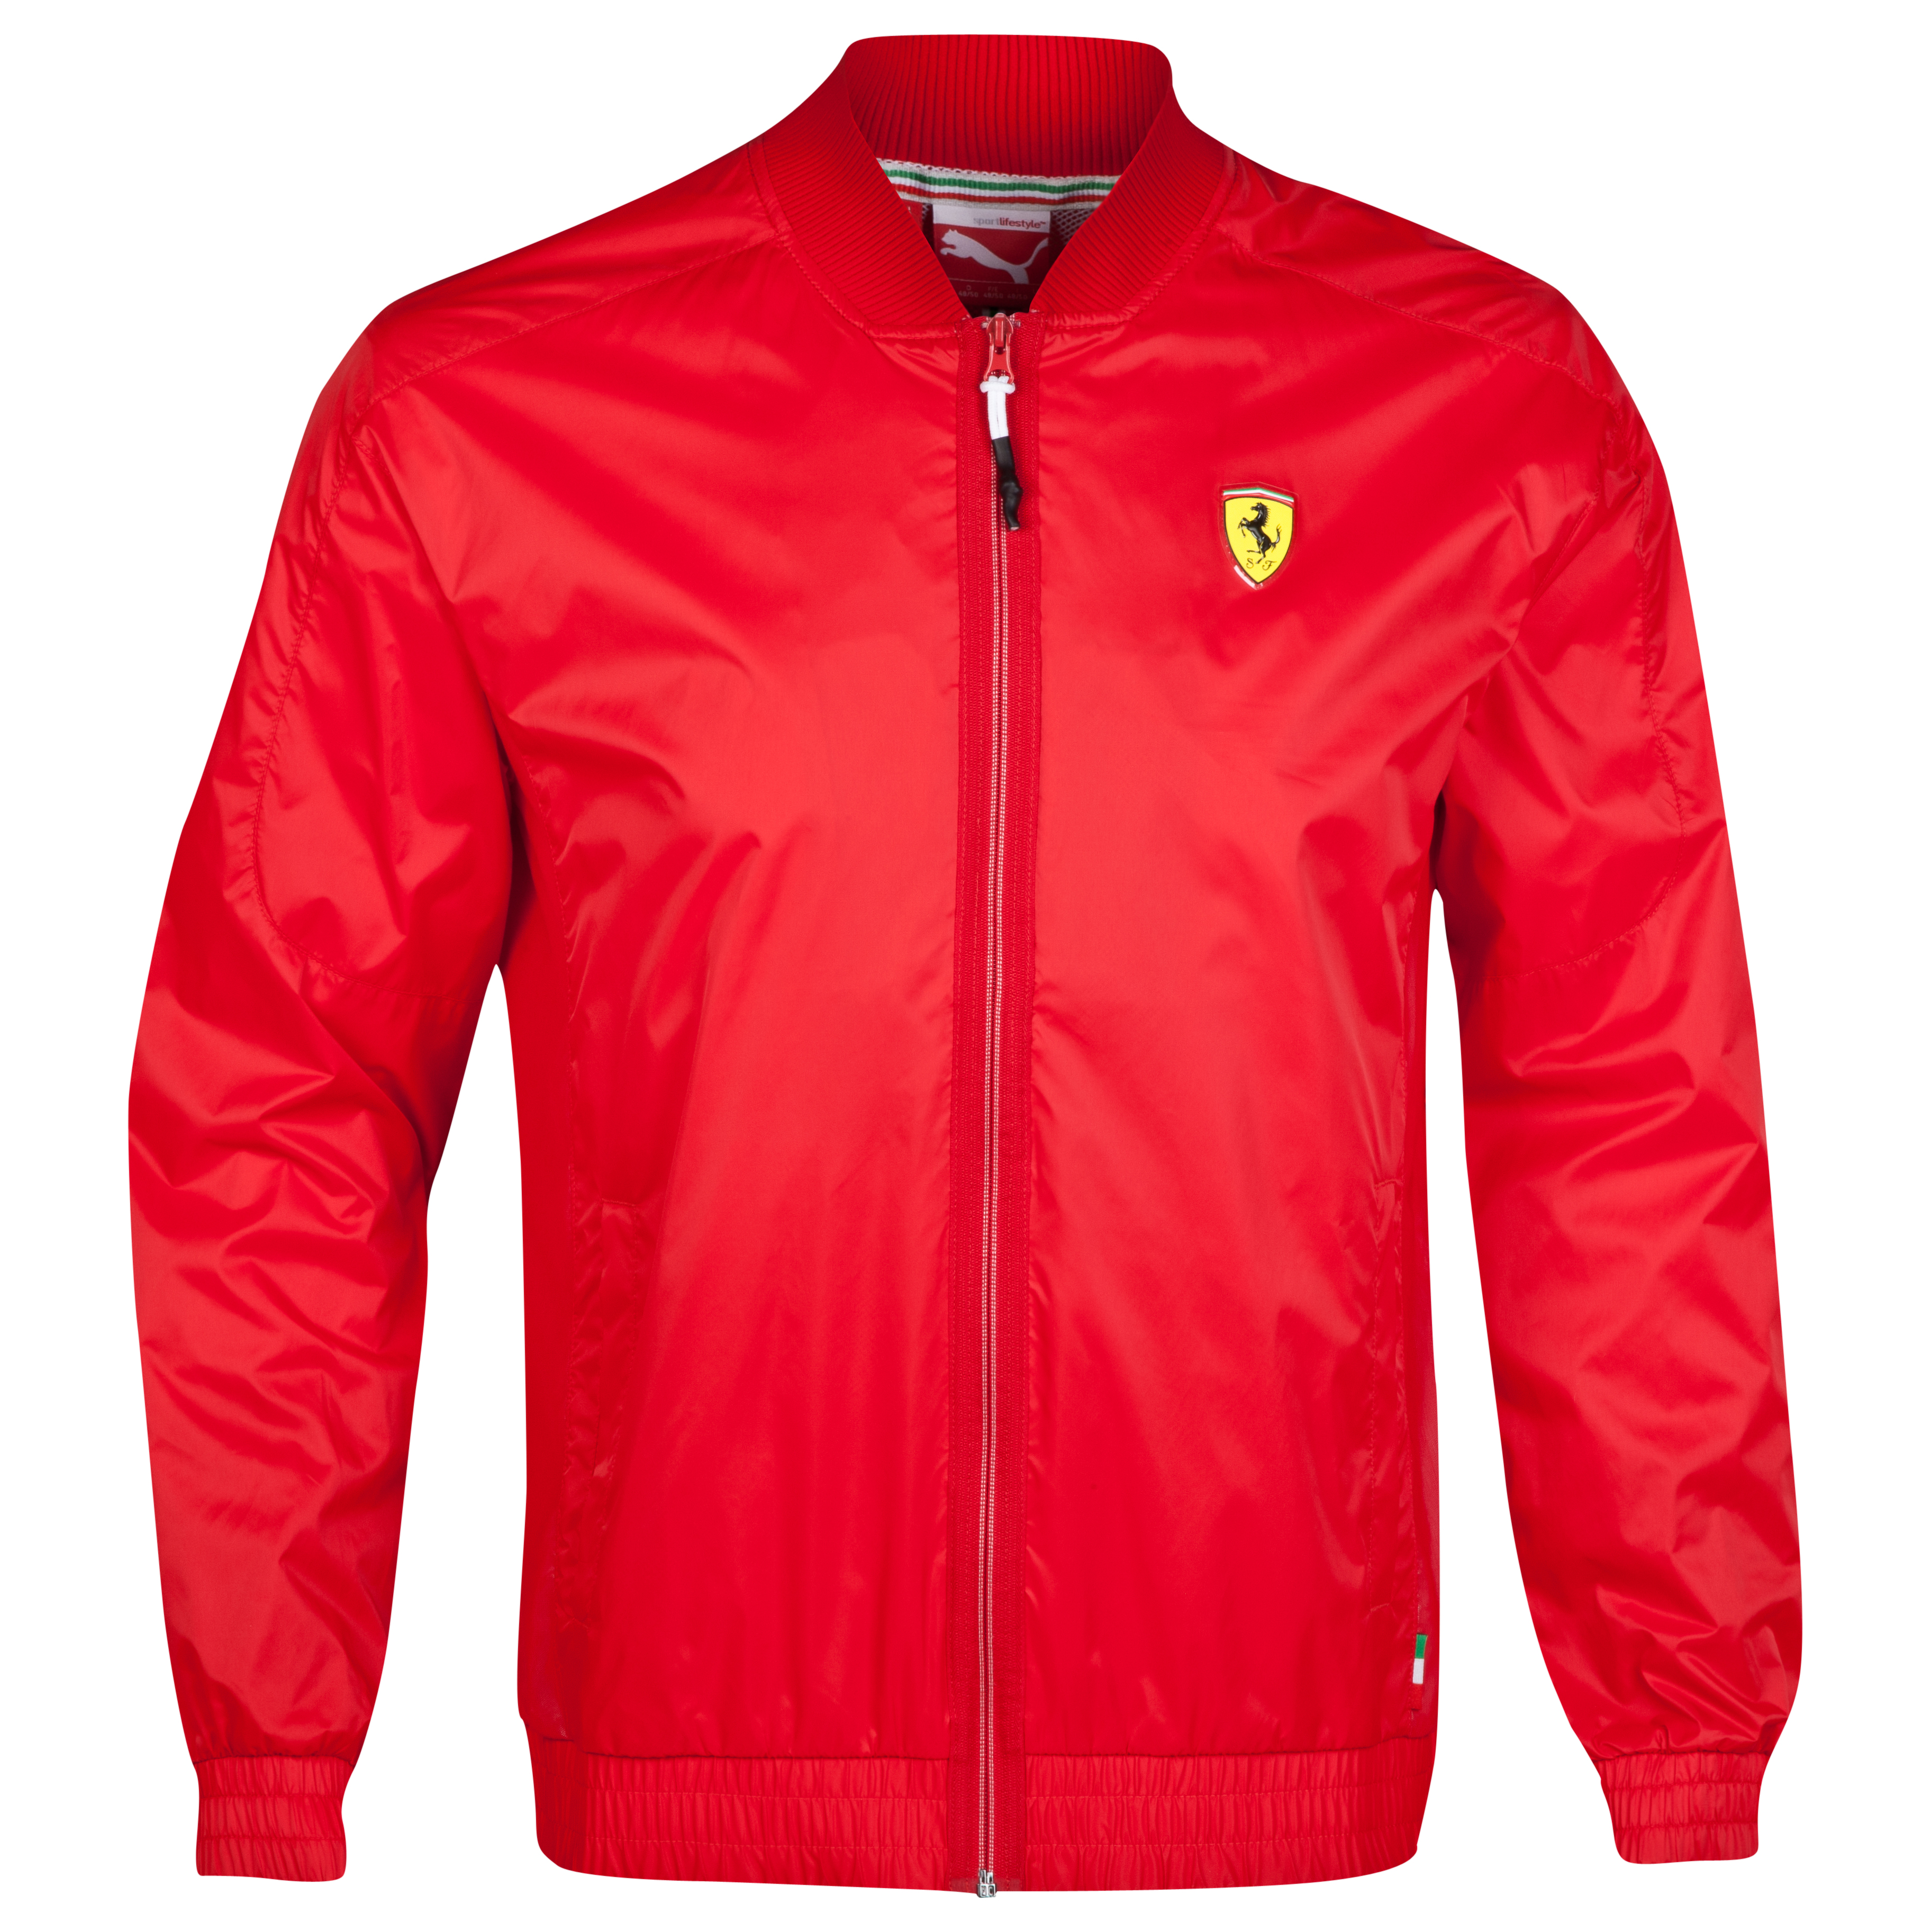 Scuderia Ferrari Lightweight Jacket Red